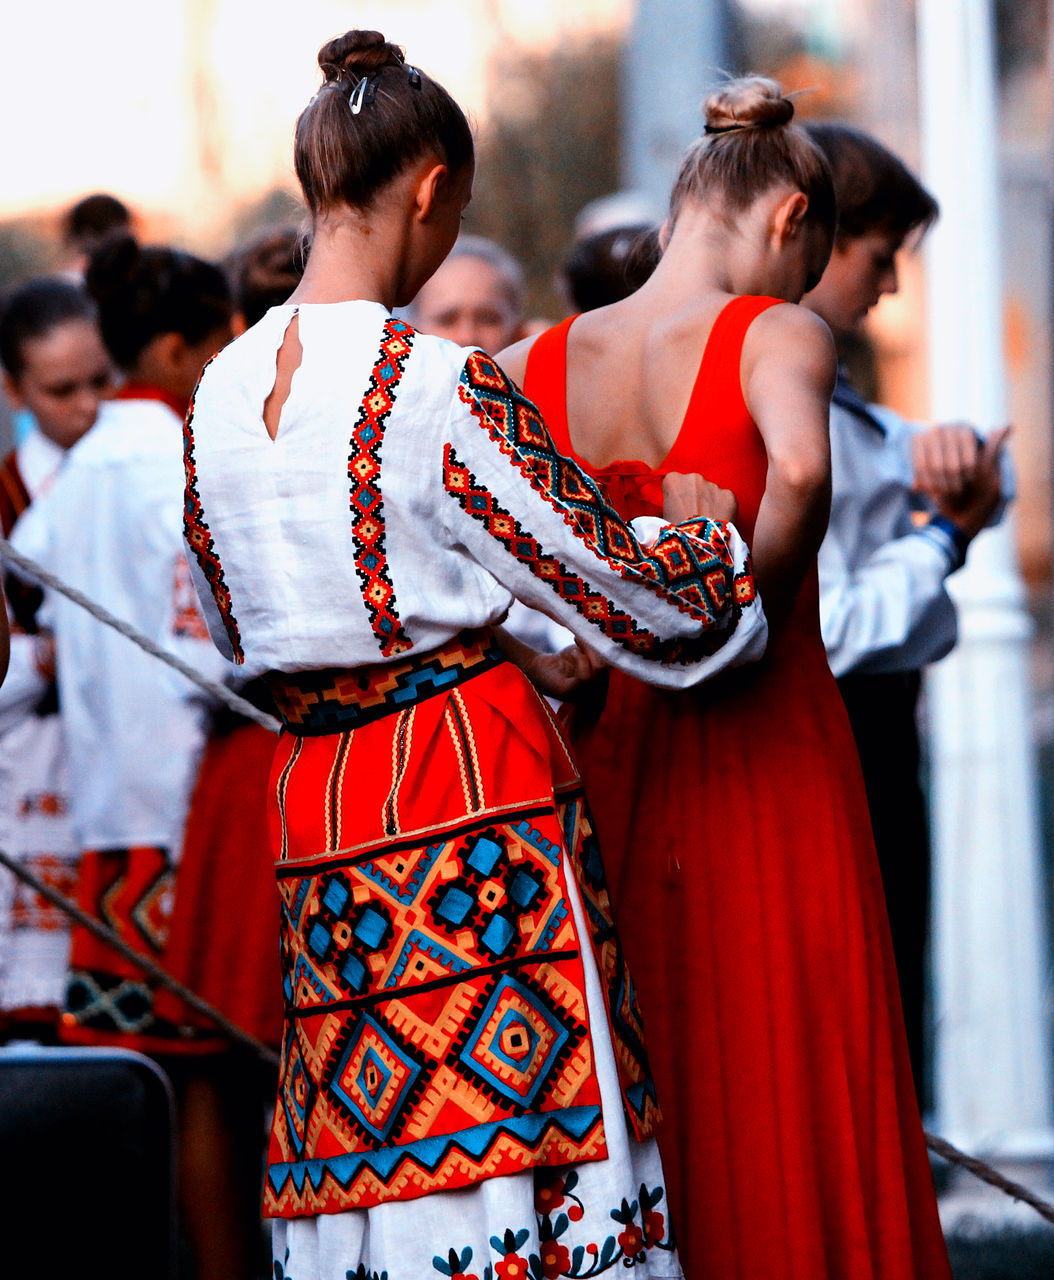 real people, traditional clothing, cultures, focus on foreground, traditional dancing, tradition, celebration, lifestyles, day, performance, togetherness, outdoors, young adult